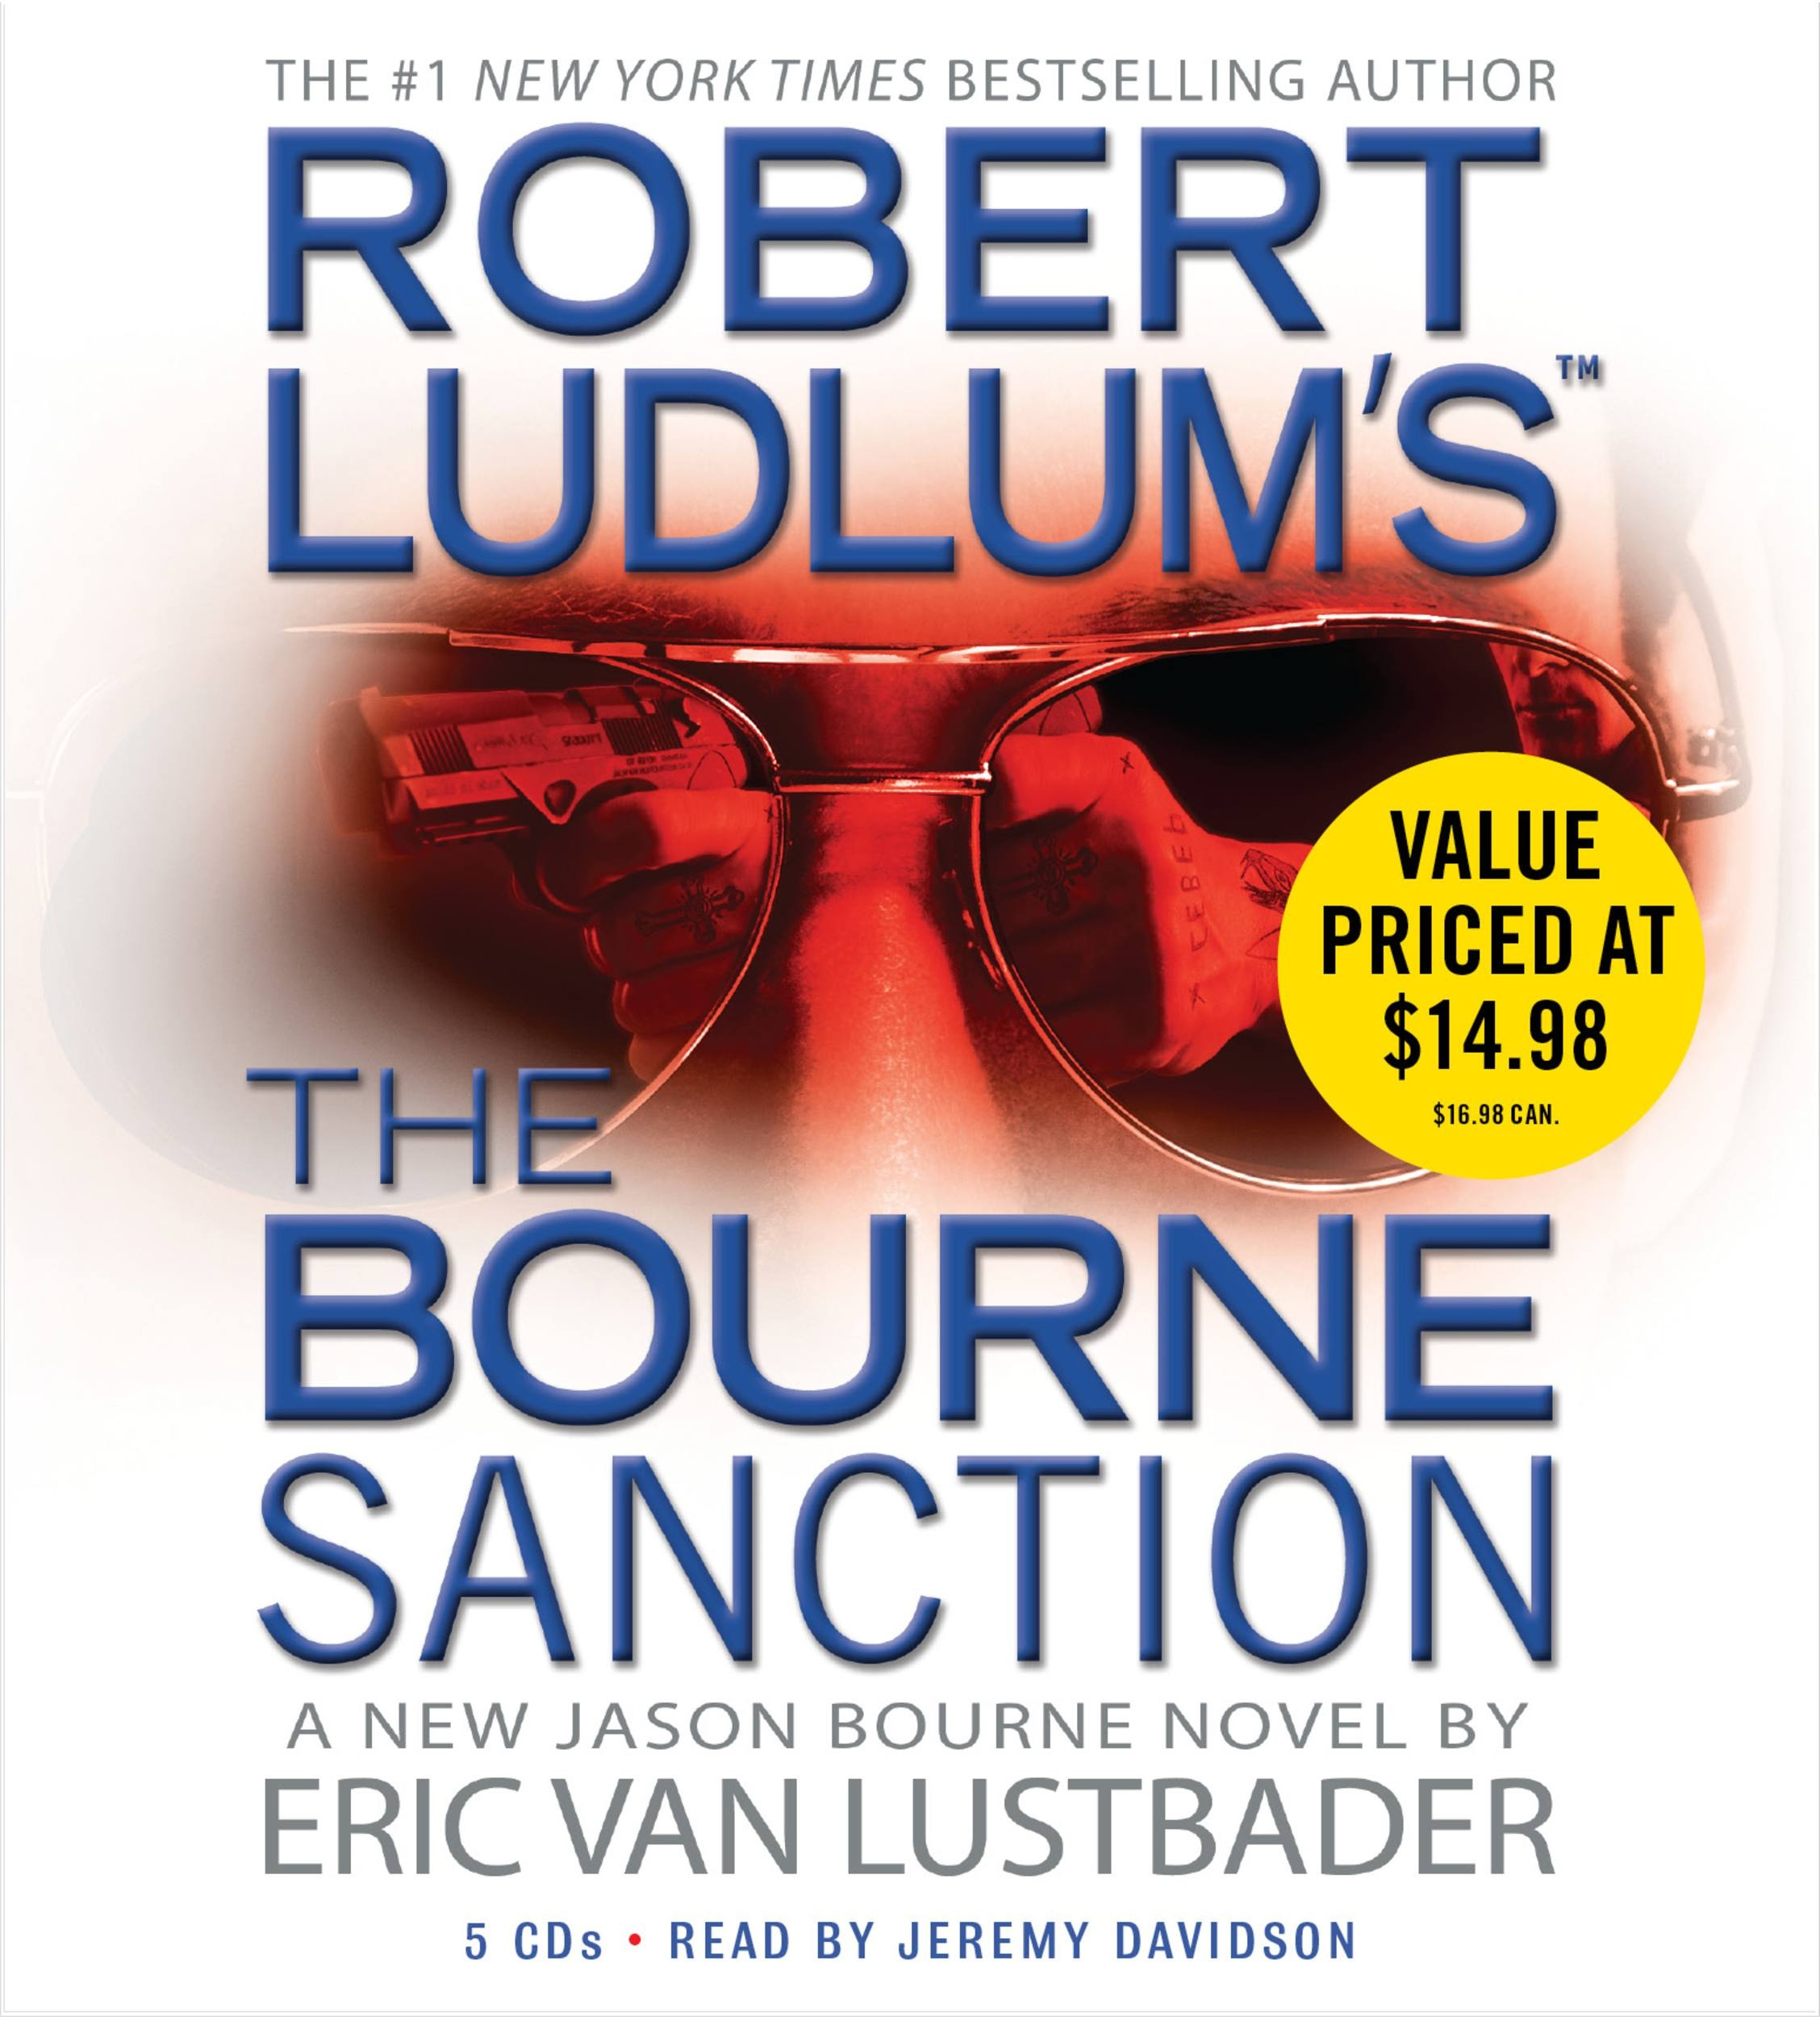 Robert Ludlum's (TM) The Bourne Sanction